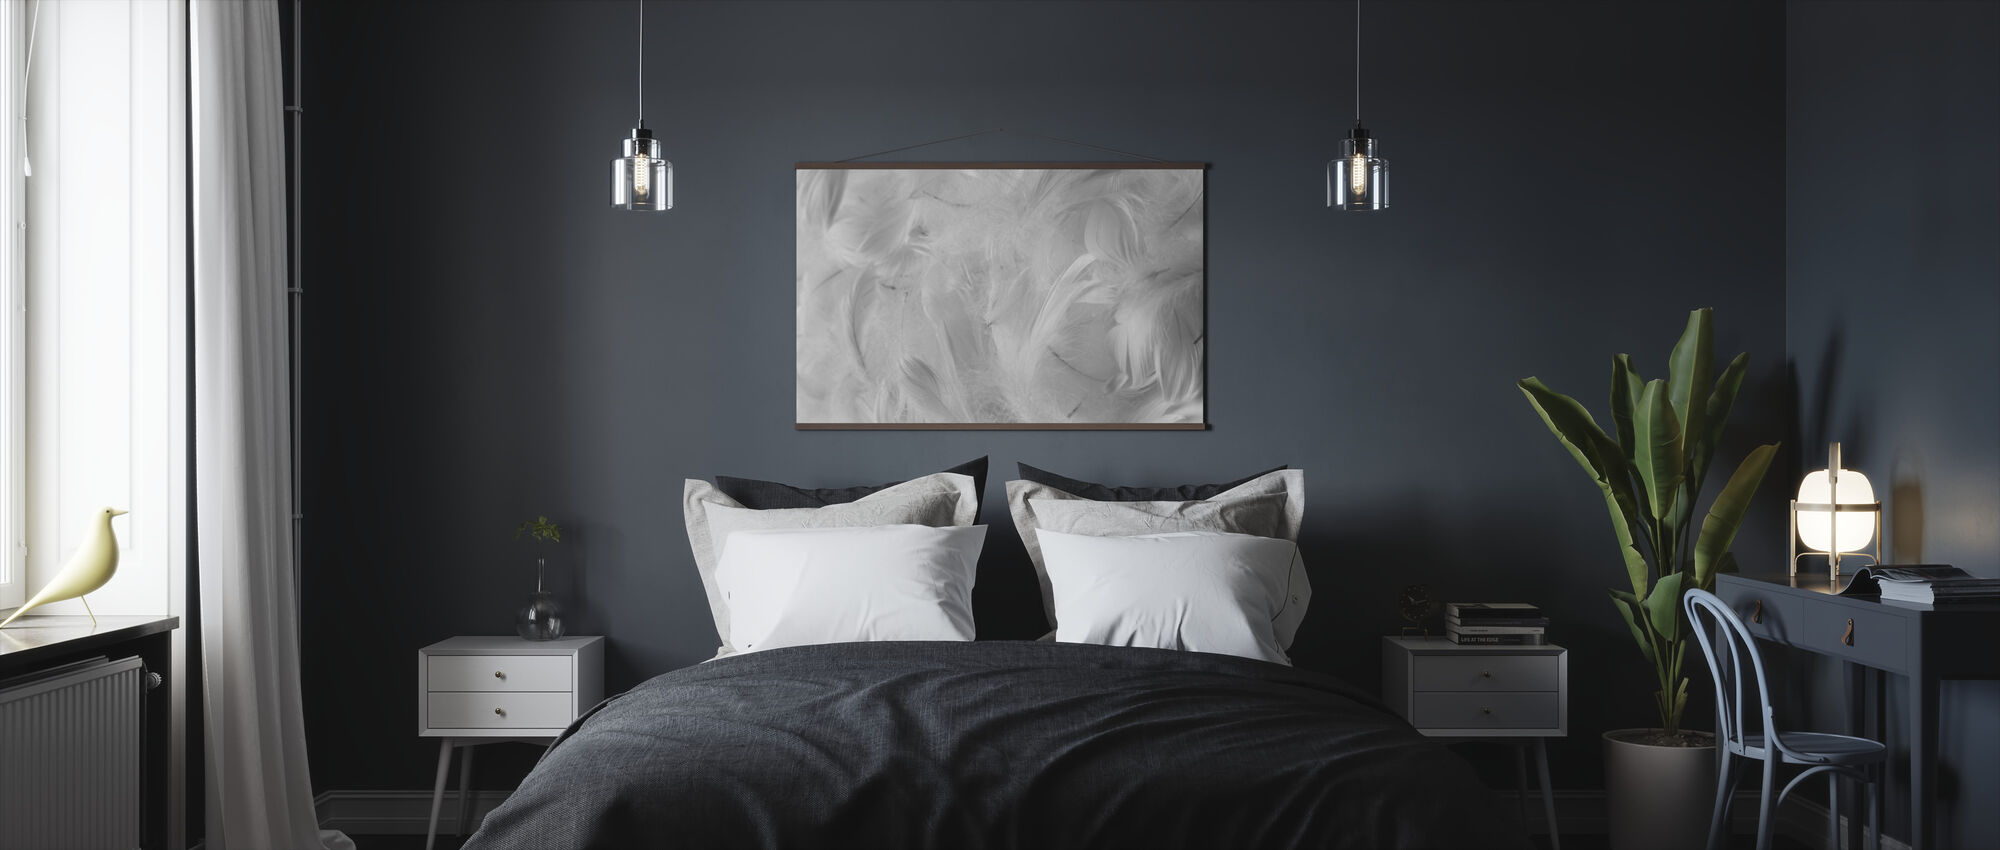 Feathers - Poster - Bedroom